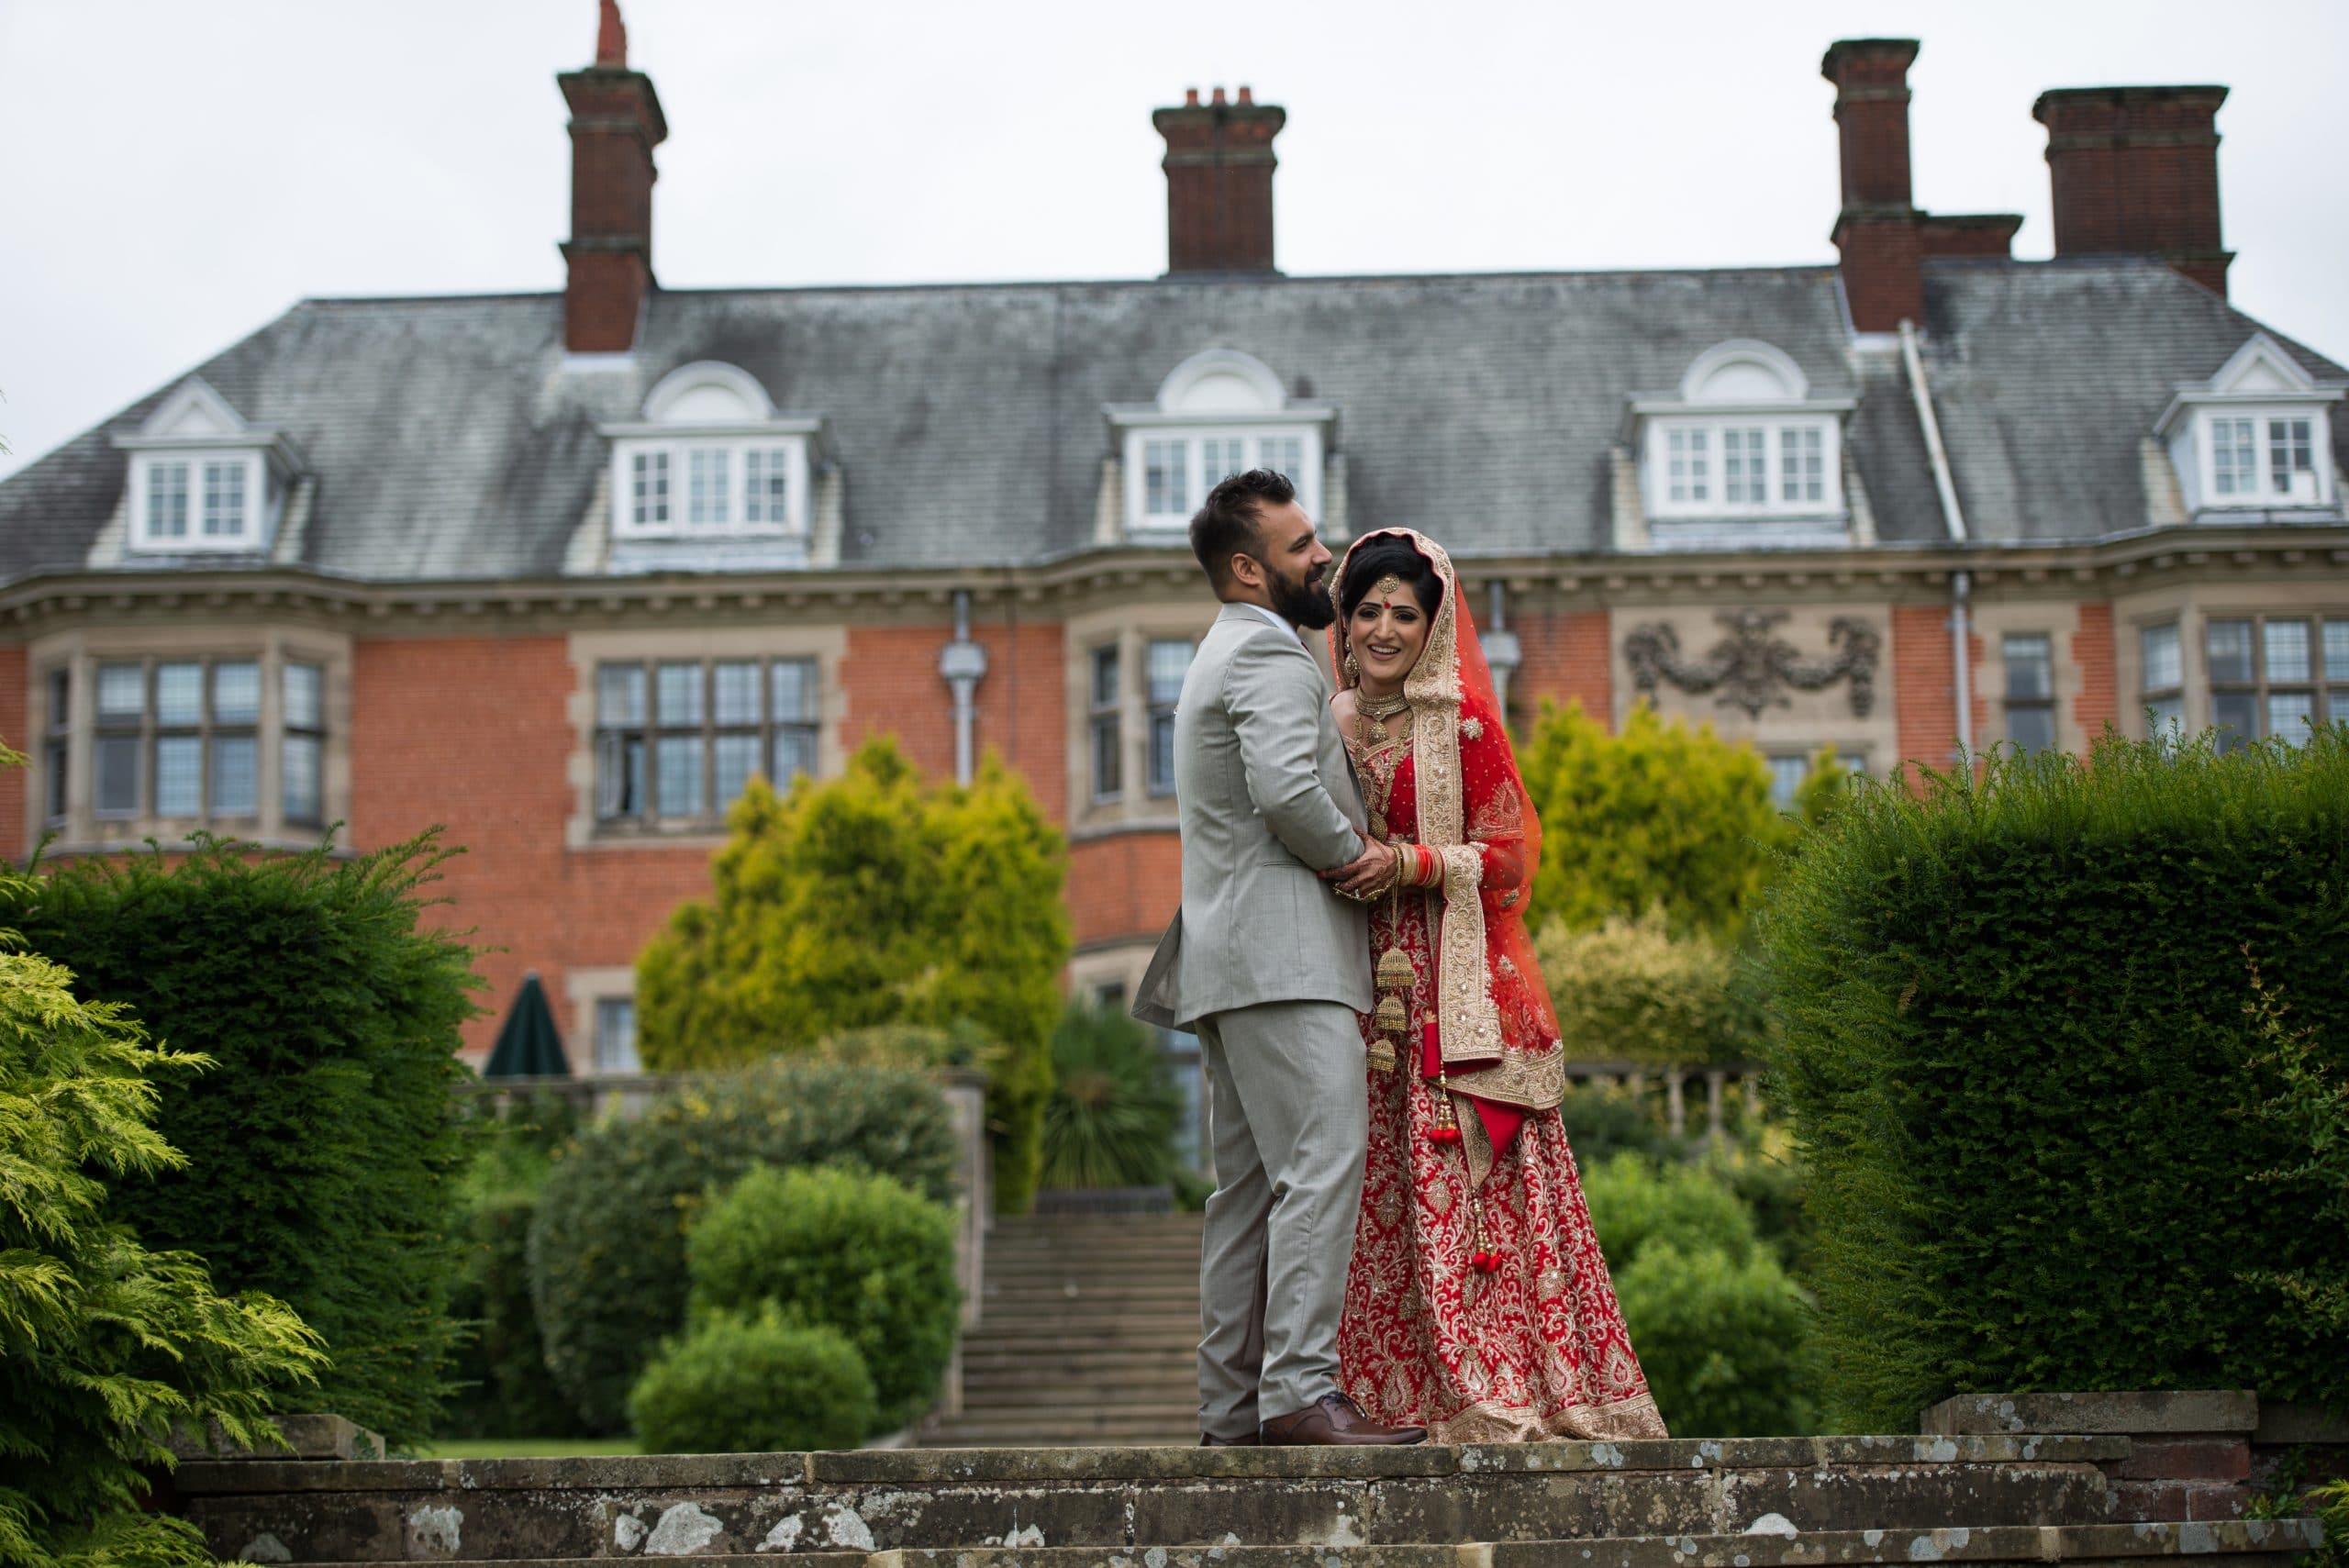 Sikh wedding Photography and Video at Dunchurch Hall // Verinder and Praveen